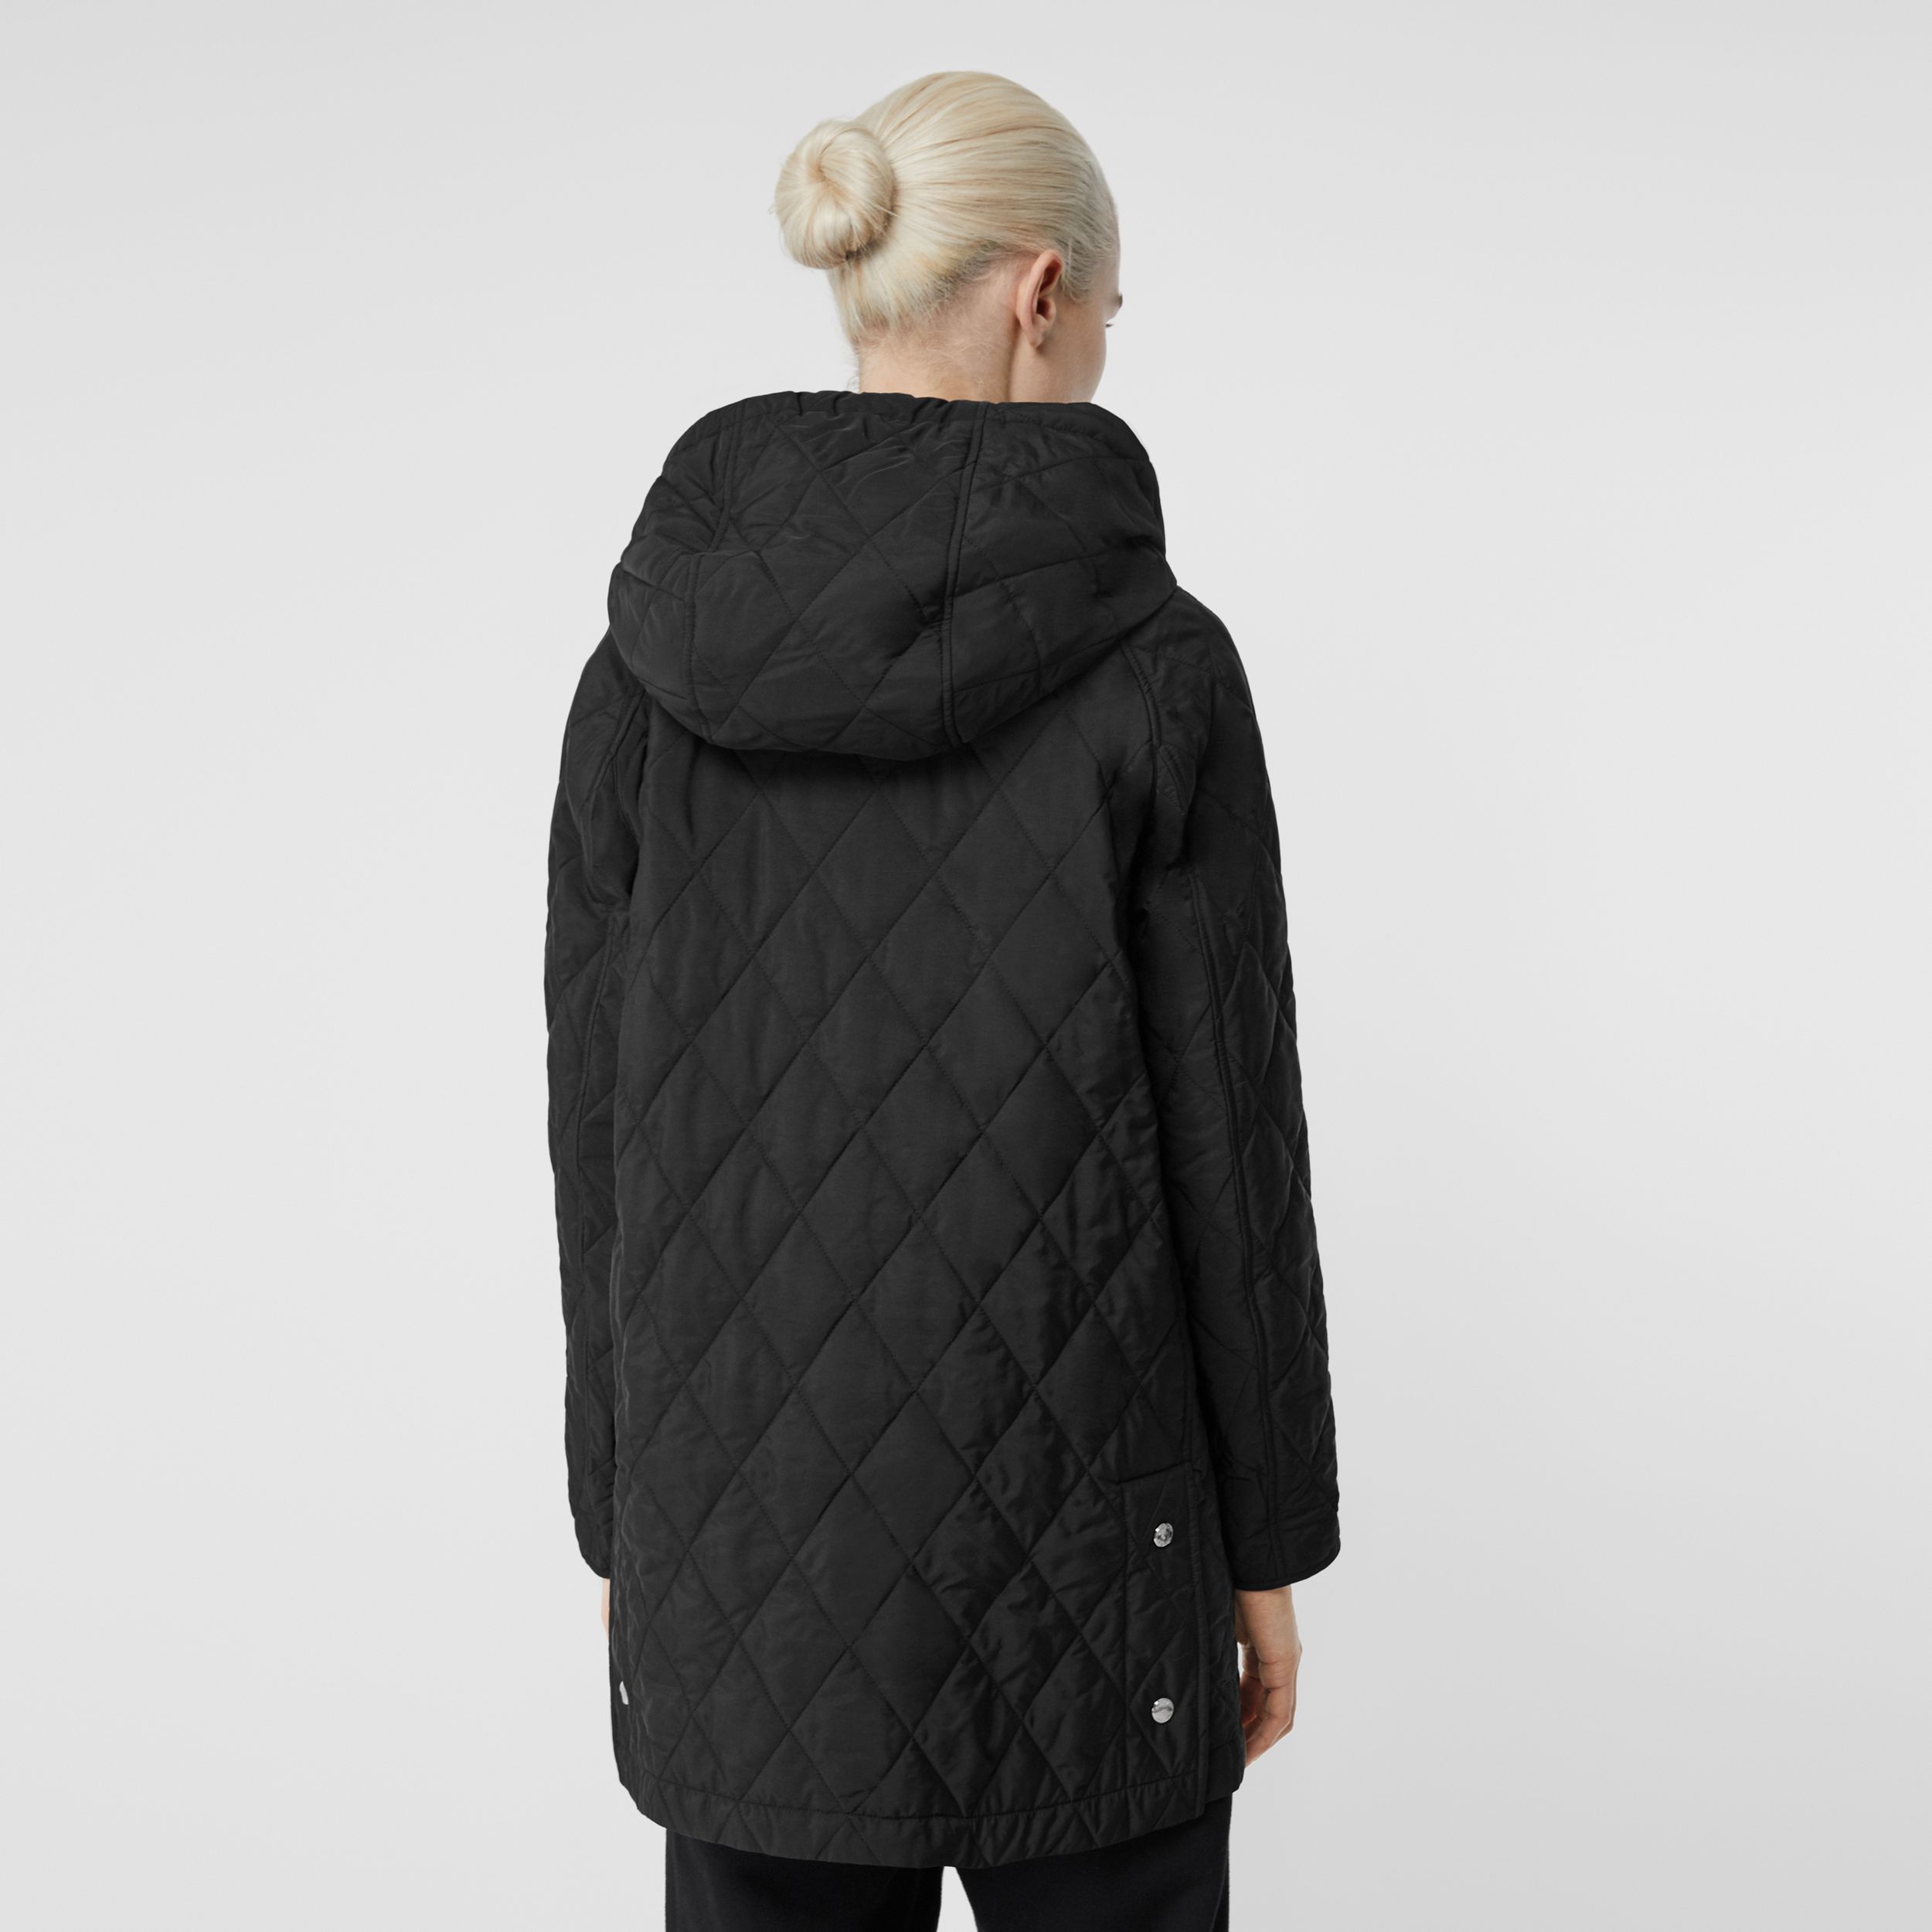 Diamond Quilted Thermoregulated Hooded Coat in Black - Women | Burberry - 3